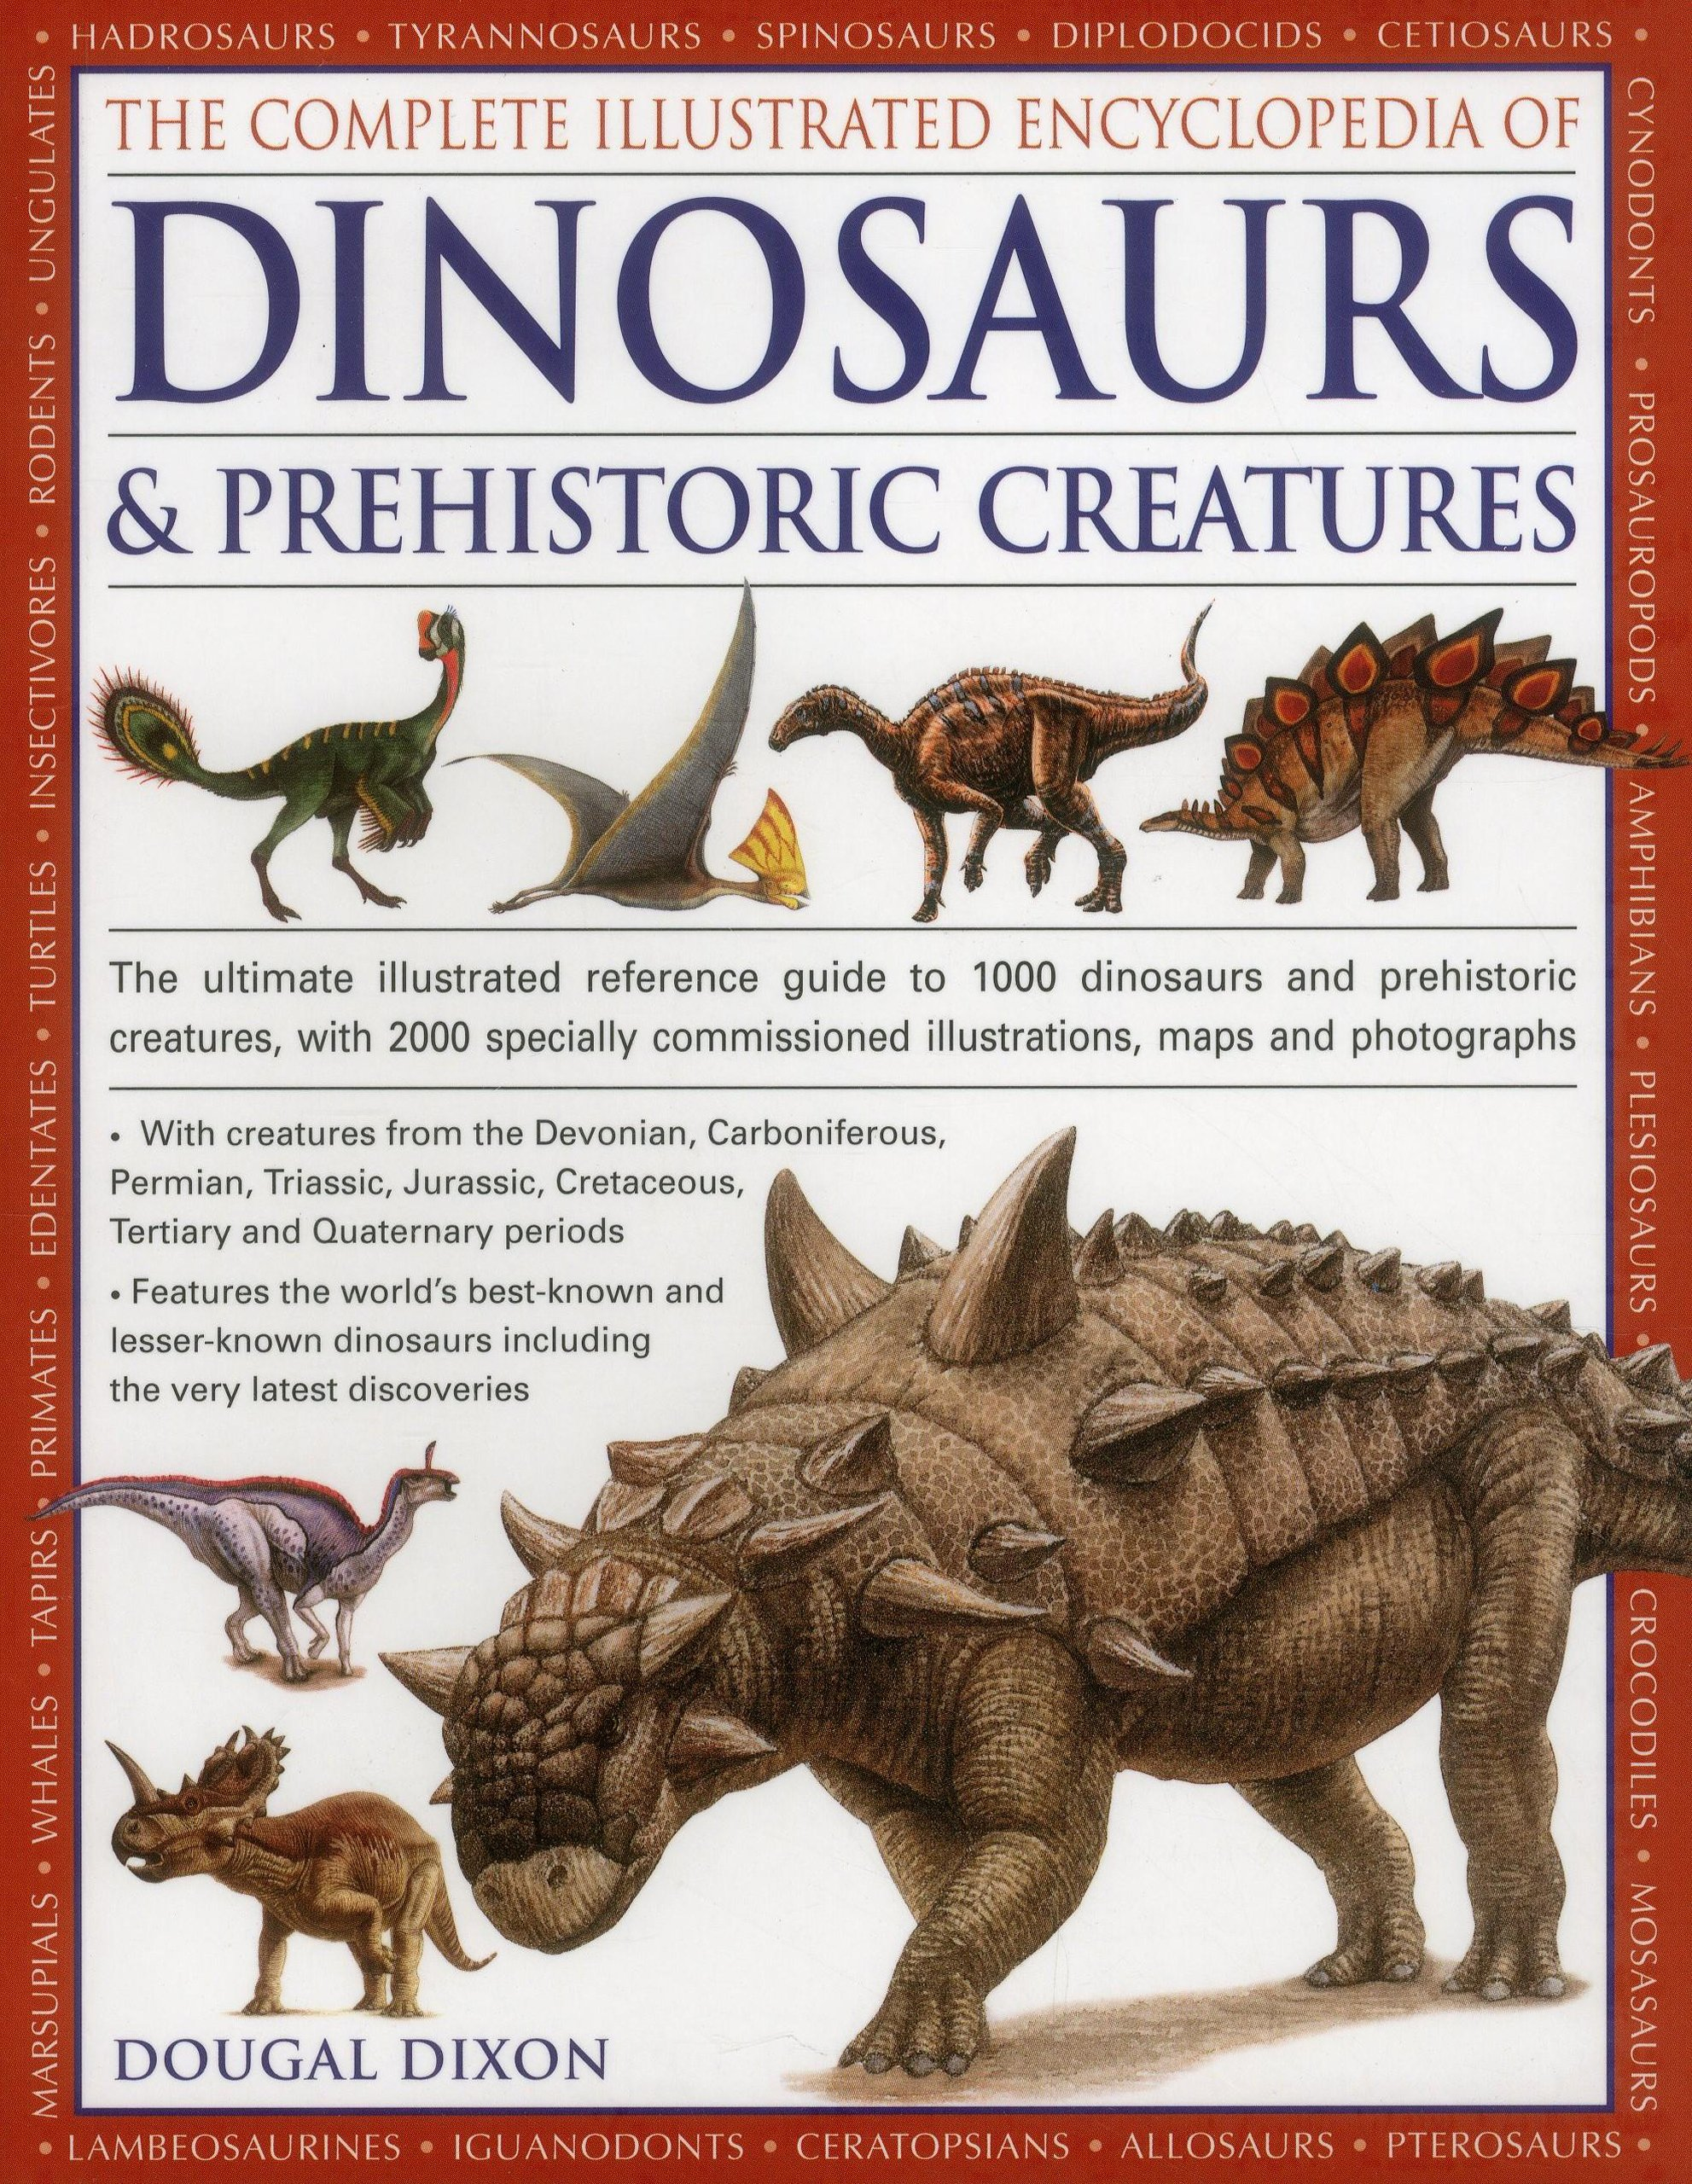 Dinosaurs discovery prehistoric creatures book